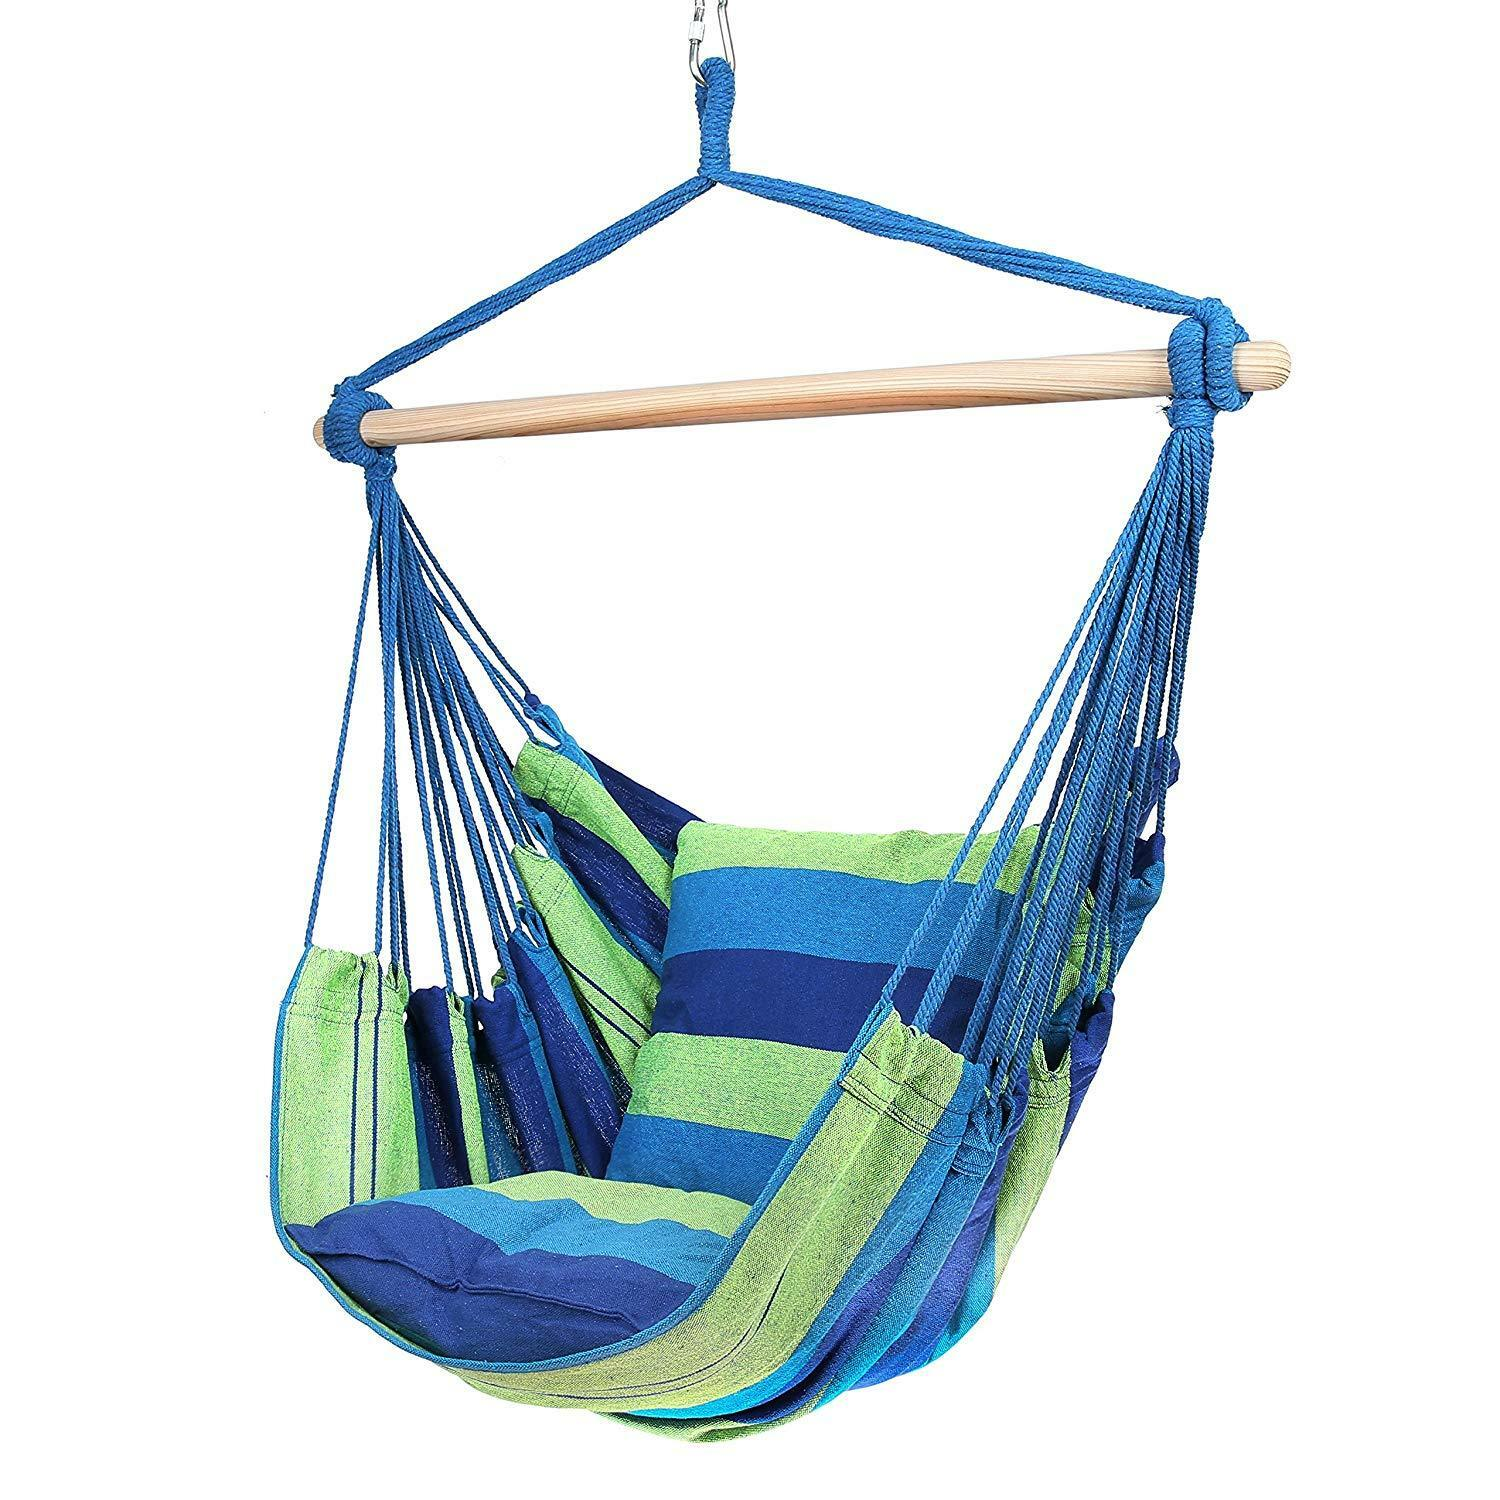 Picture of: Hanging Hammock Chair Hanging Swing Chair With Two Cushions 34 Wide Orderegg